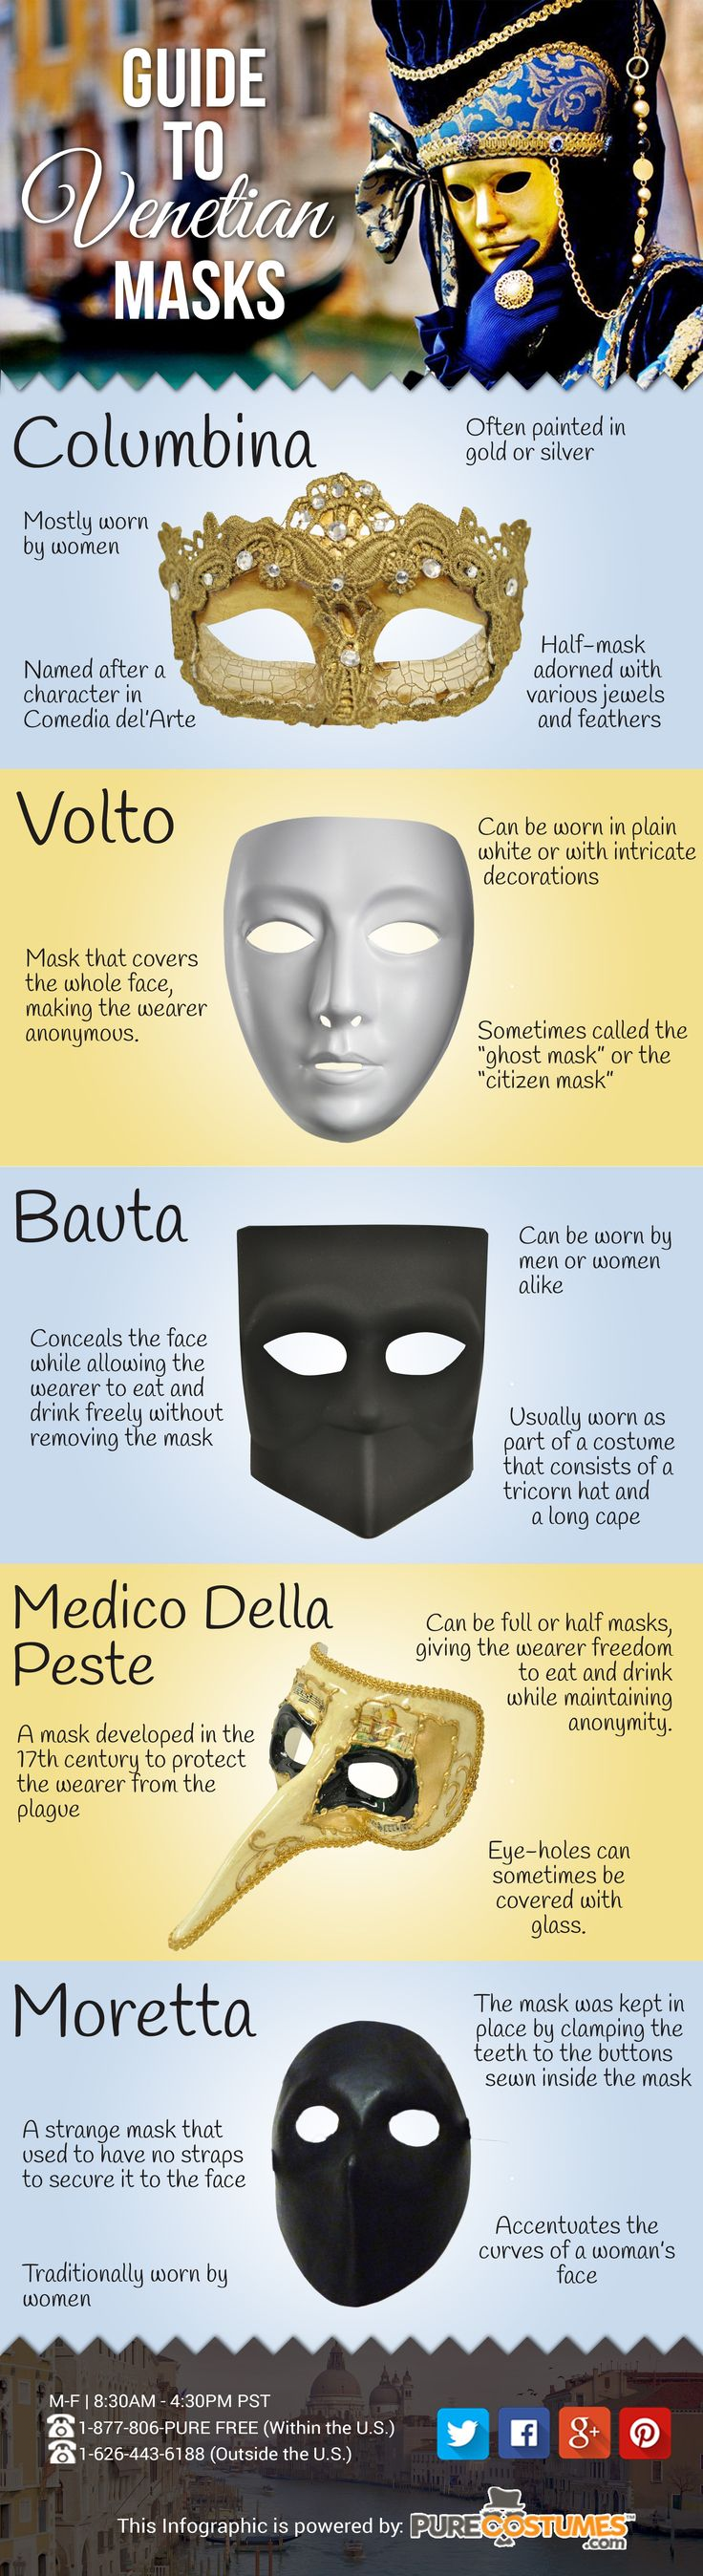 #Infographic: A Guide to Venetian Masks #mardigras